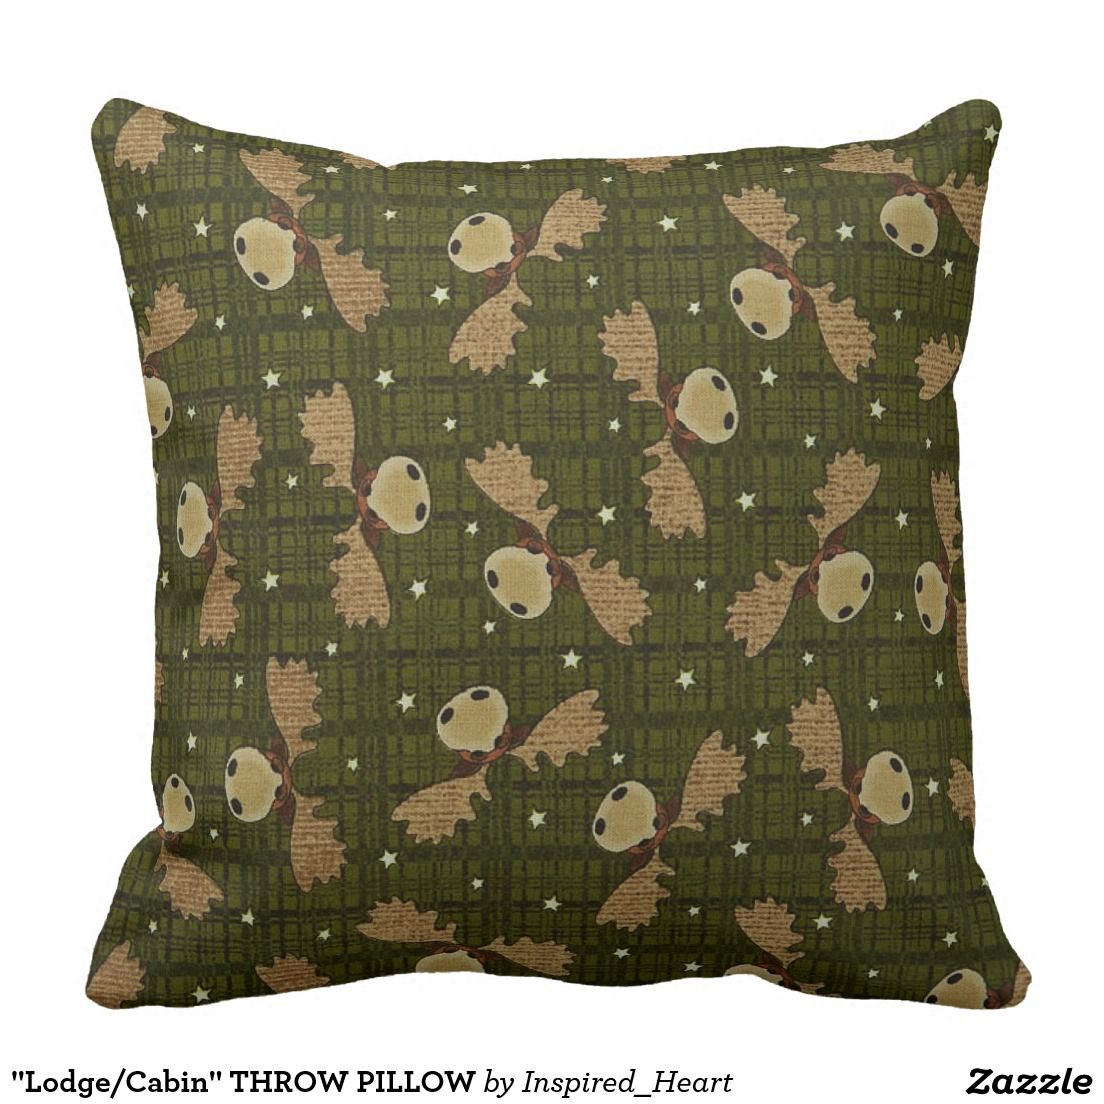 "Lodge/Cabin"" THROW PILLOW 